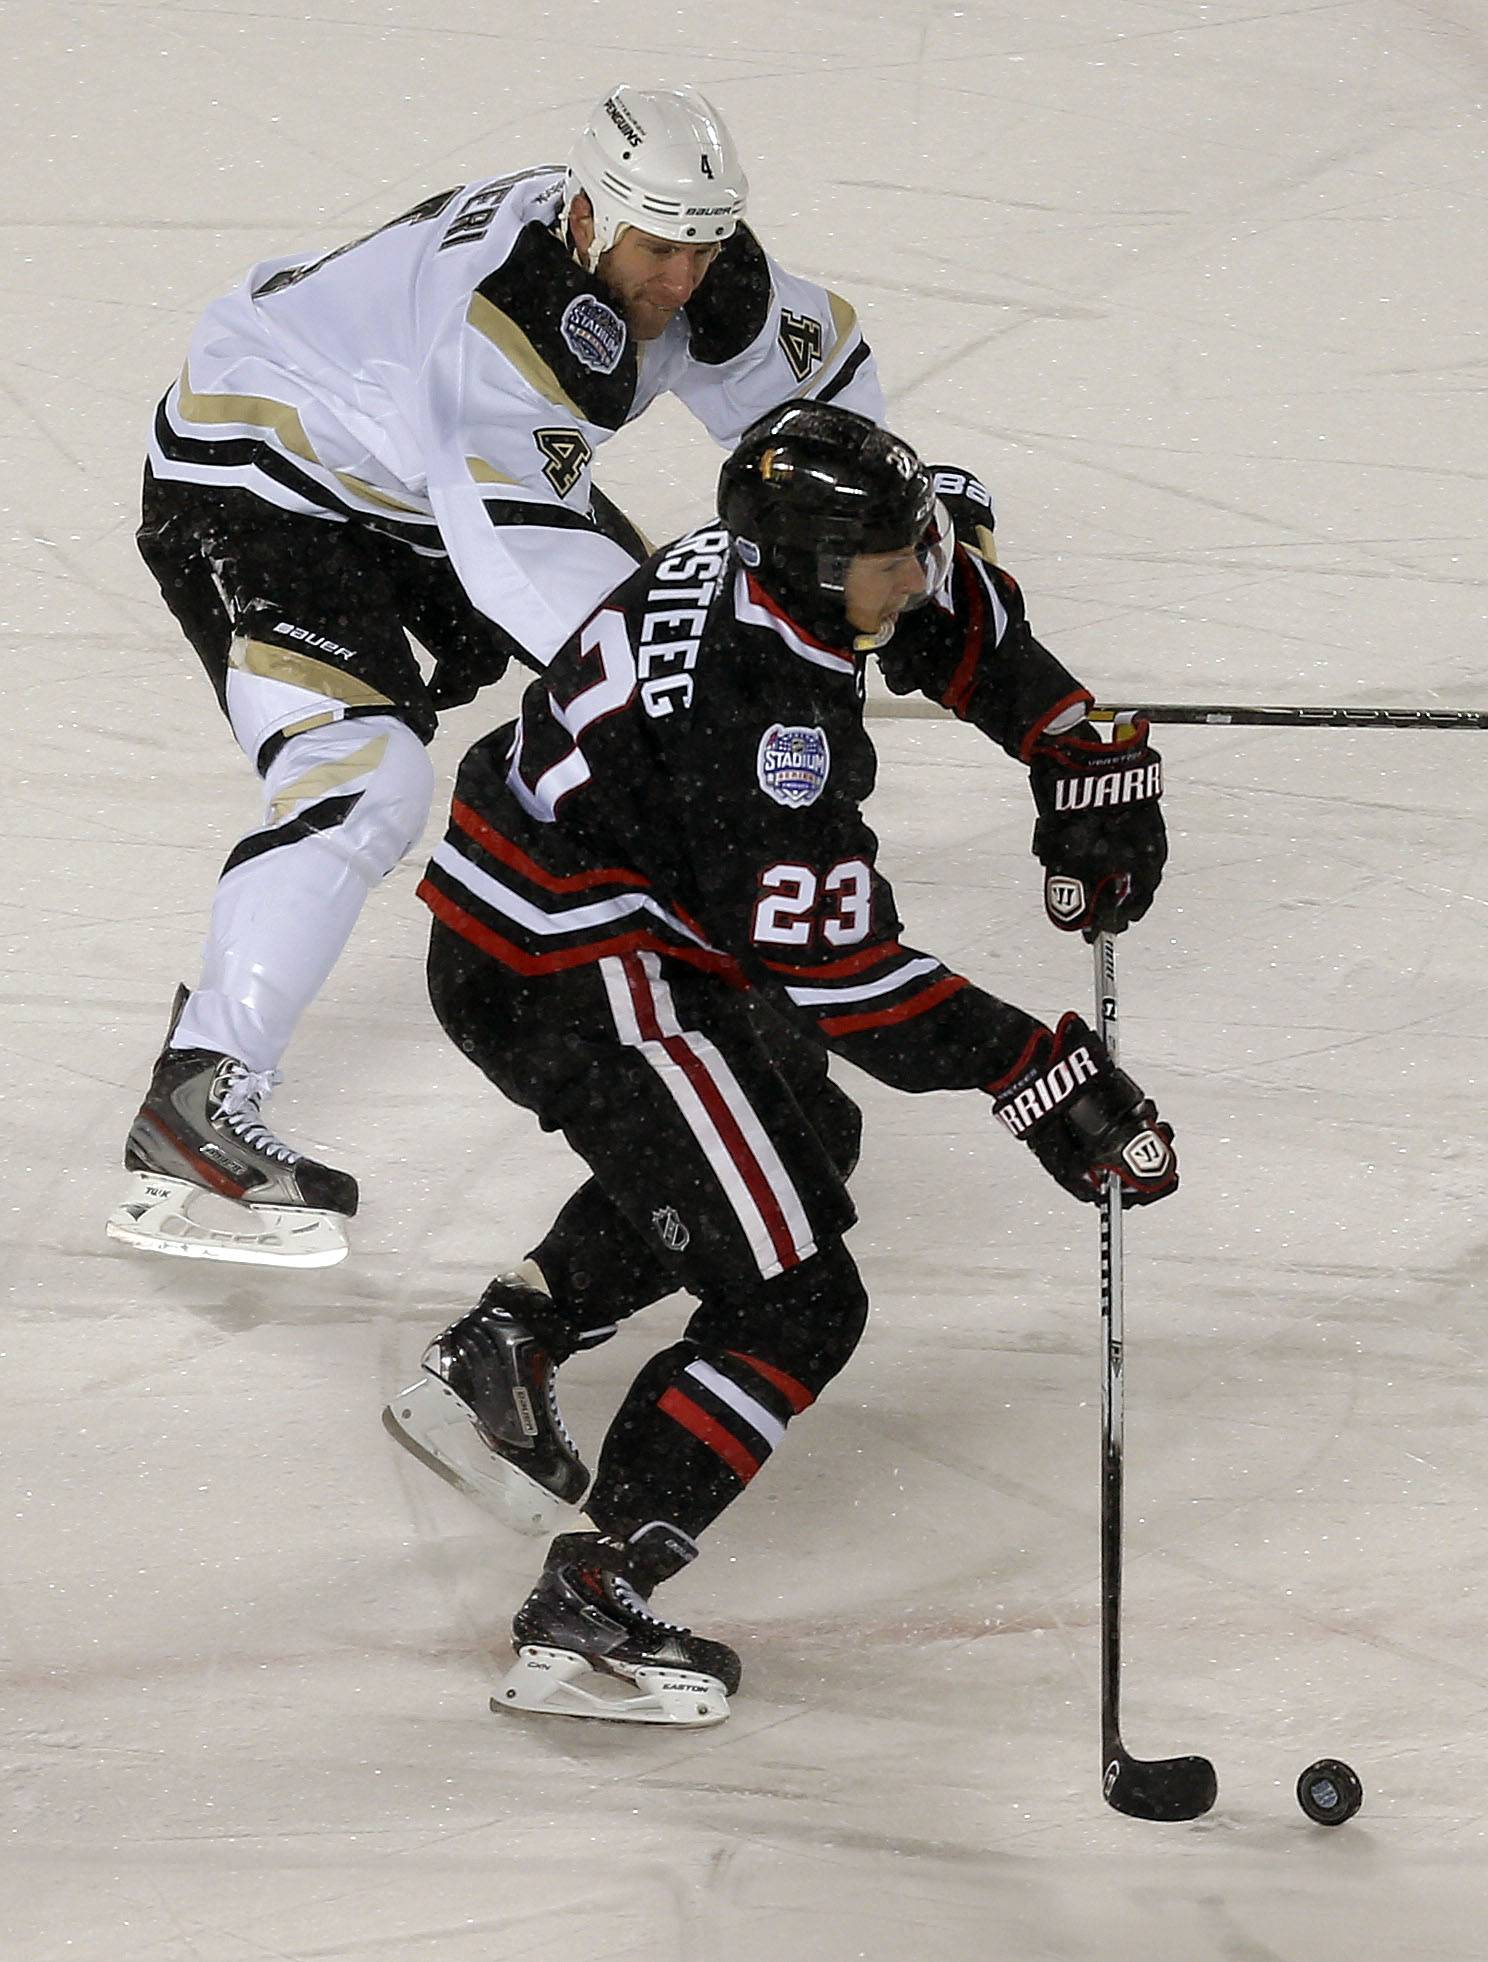 Chicago Blackhawks right wing Kris Versteeg drives on Pittsburgh Penguins Rob Scuderi during the NHL Stadium Series between the Blackhawks and the Penguins Saturday at Soldier Field.